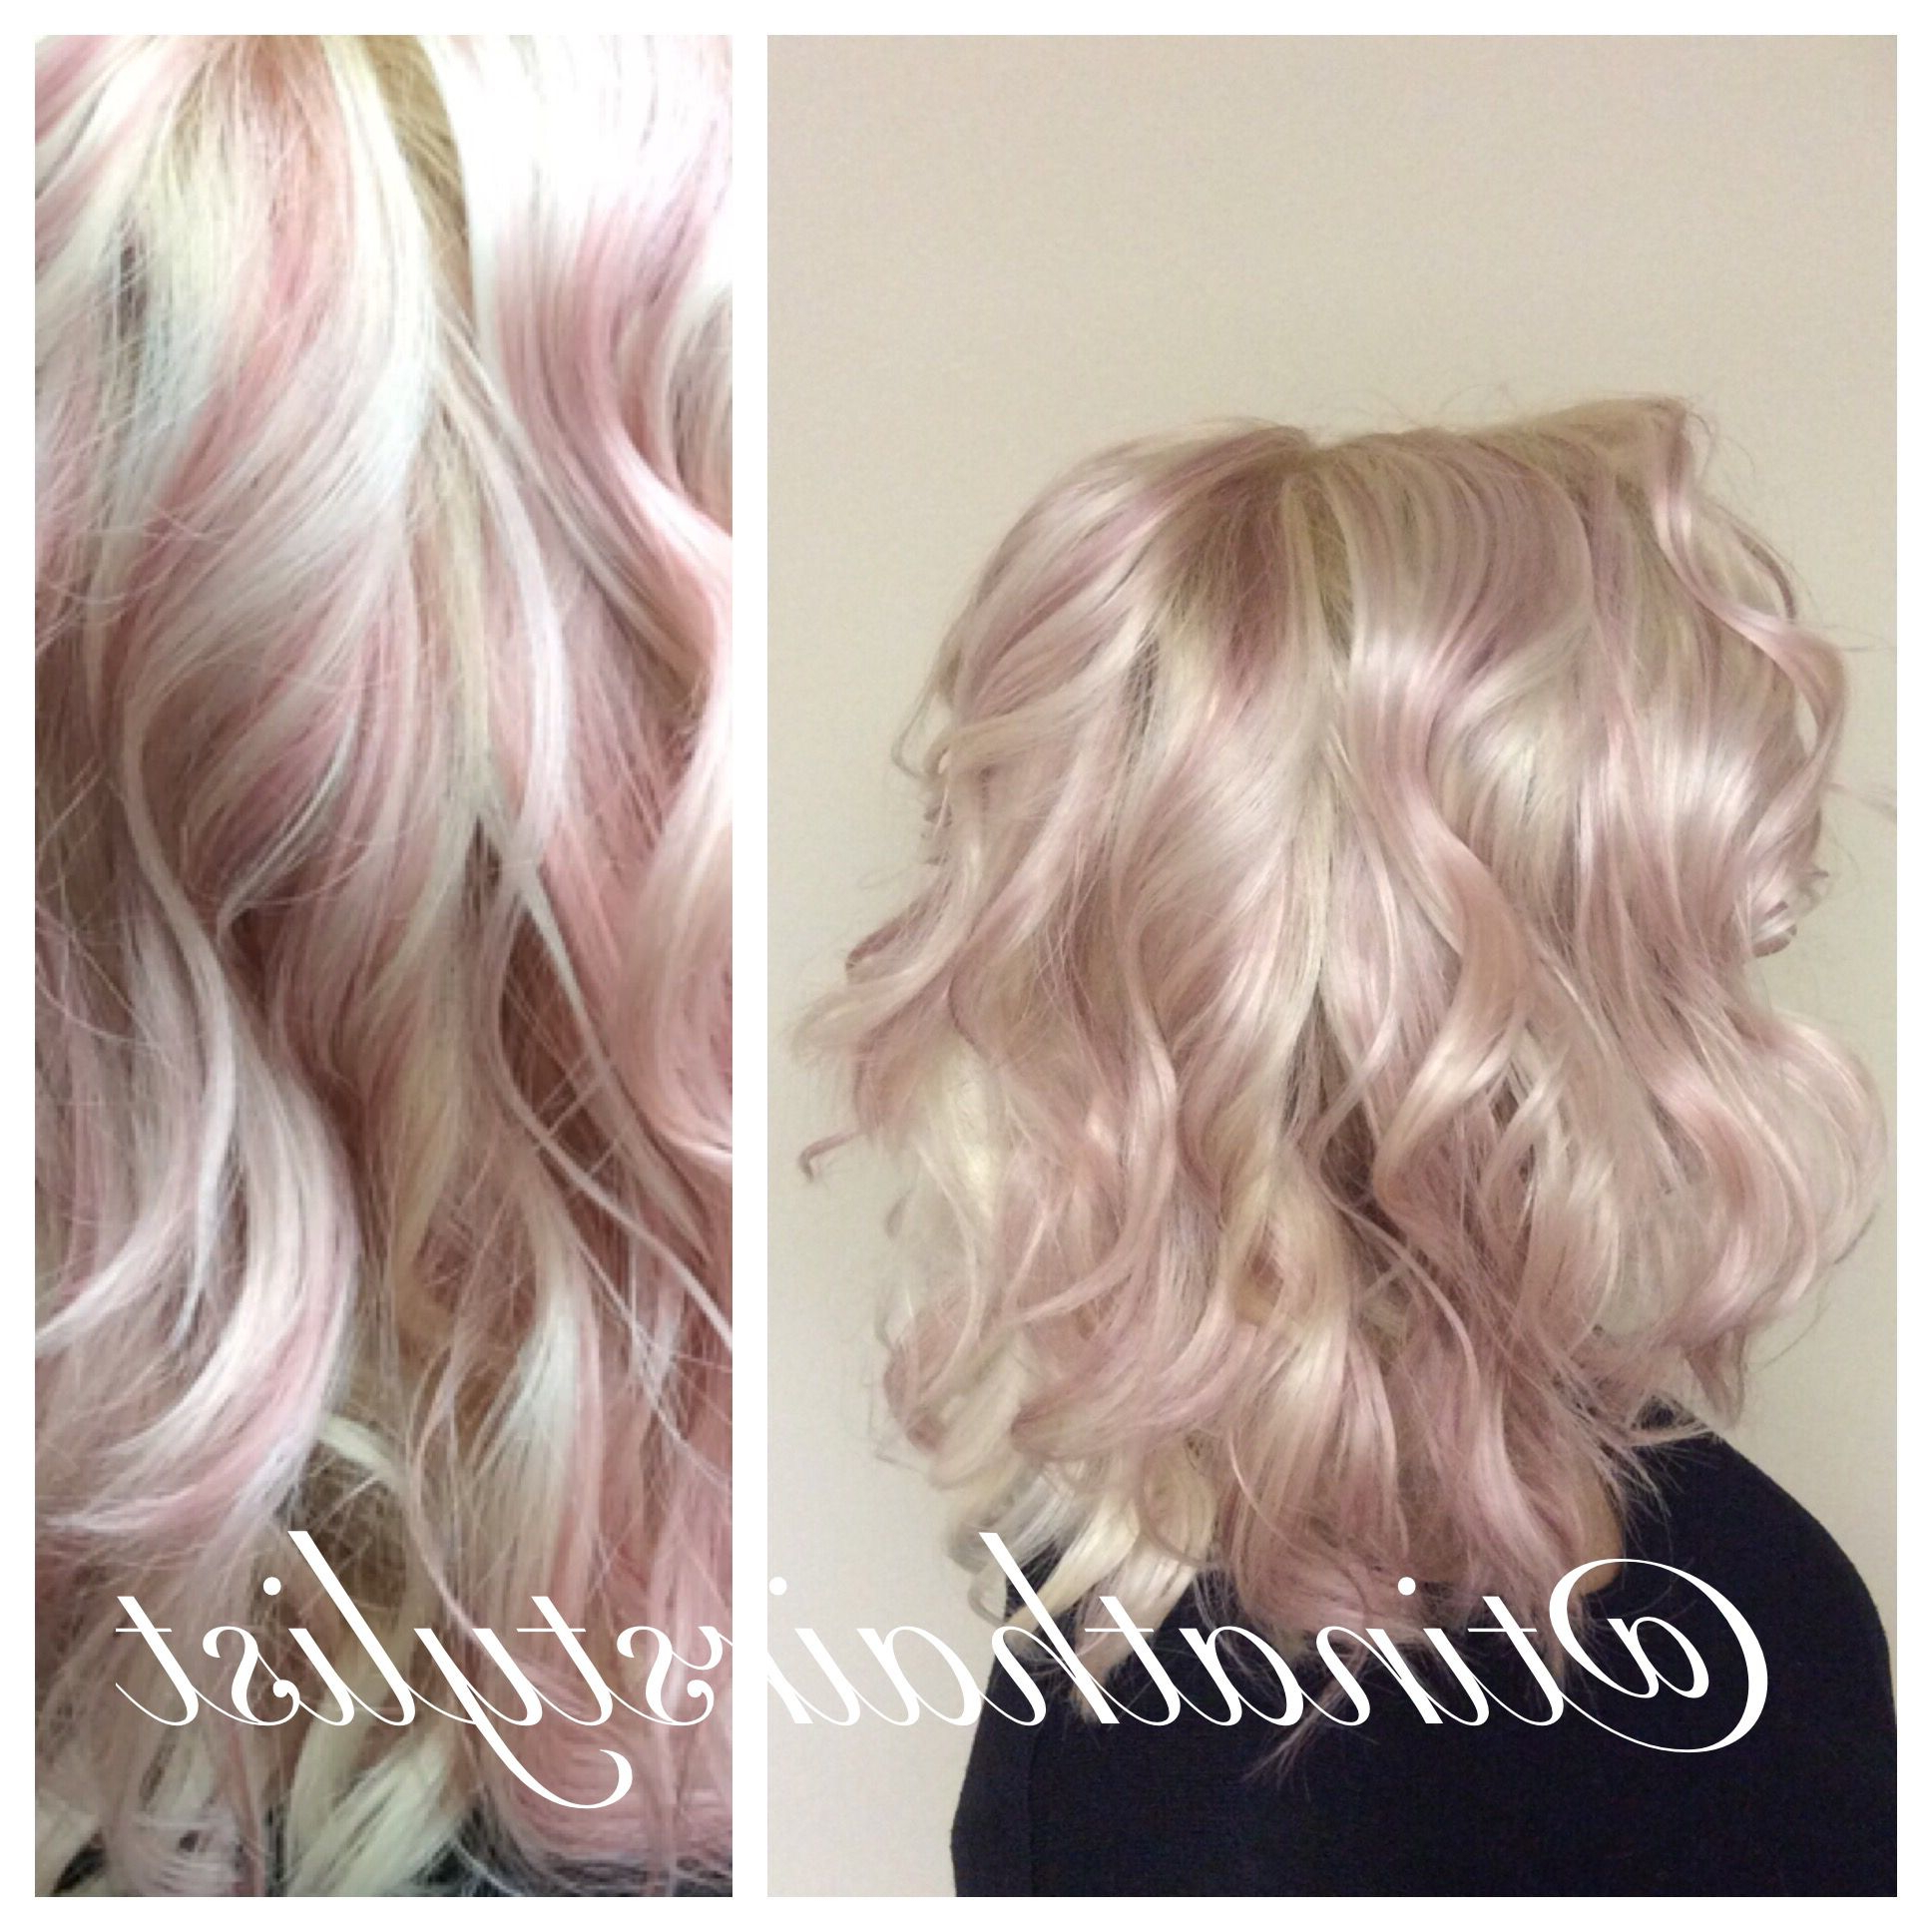 Widely Used Hot Pink Highlights On Gray Curls Hairstyles Regarding Insta: @tinathairstylist Pastel Pink Dream Highlights (View 17 of 20)